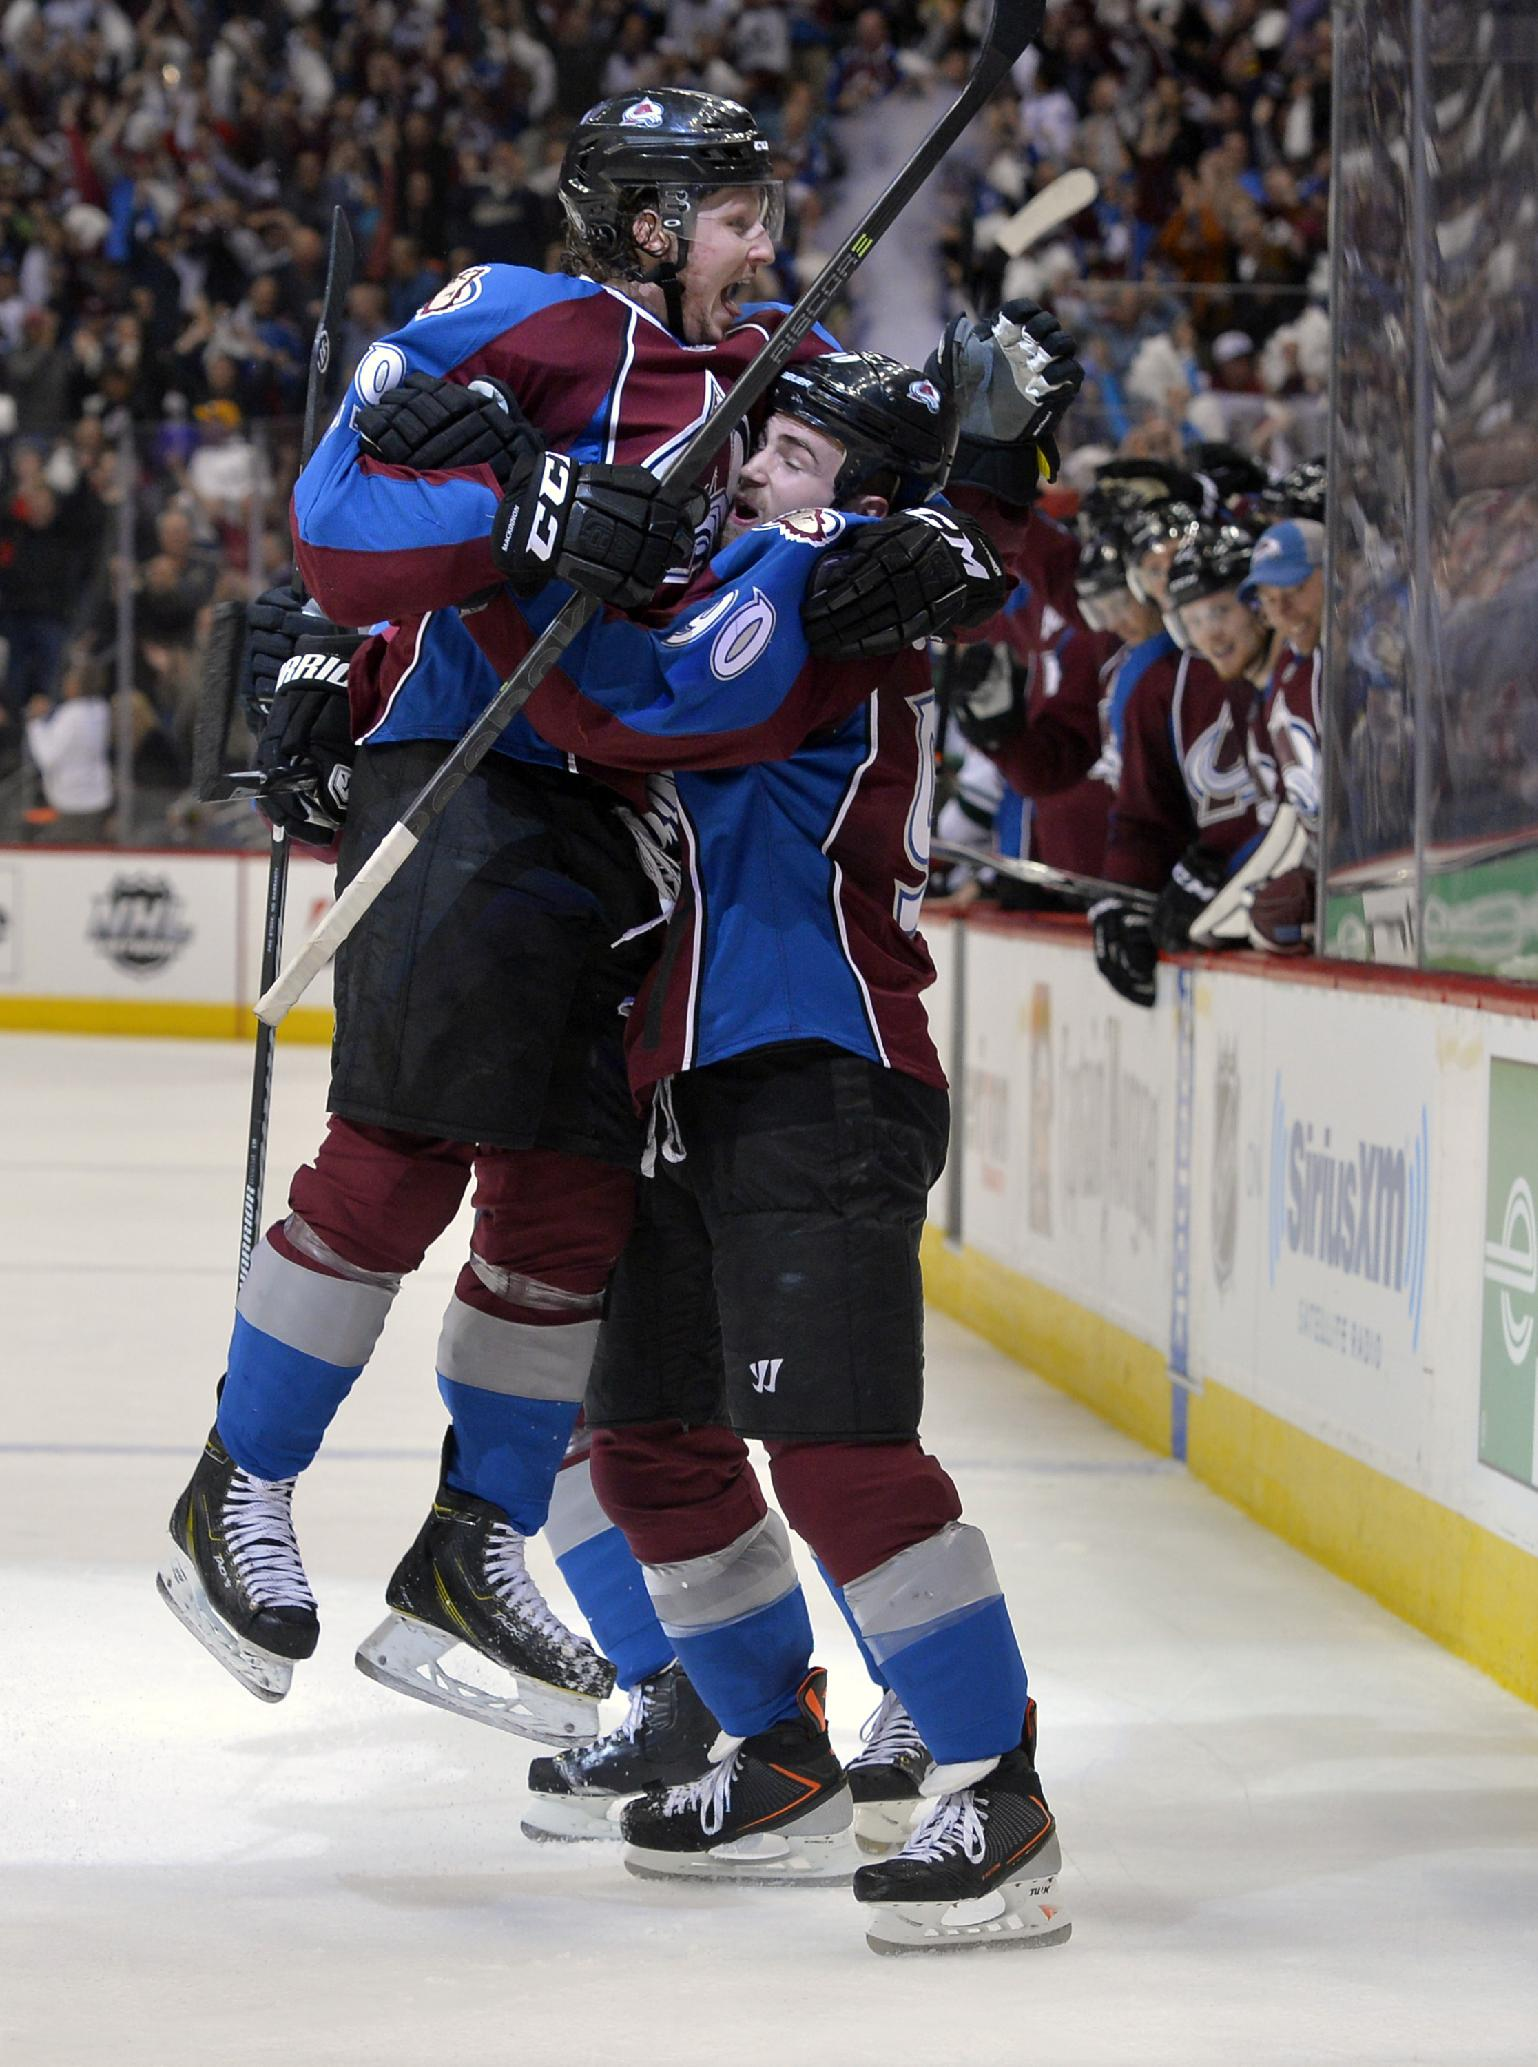 Colorado Avalanche center Ryan O'Reilly (90) is congratulated by teammate Nathan MacKinnon (29) after scoring a goal against the Minnesota Wild during the second period in Game 1 of an NHL hockey first-round playoff series on Thursday, April 17, 2014, in Denver